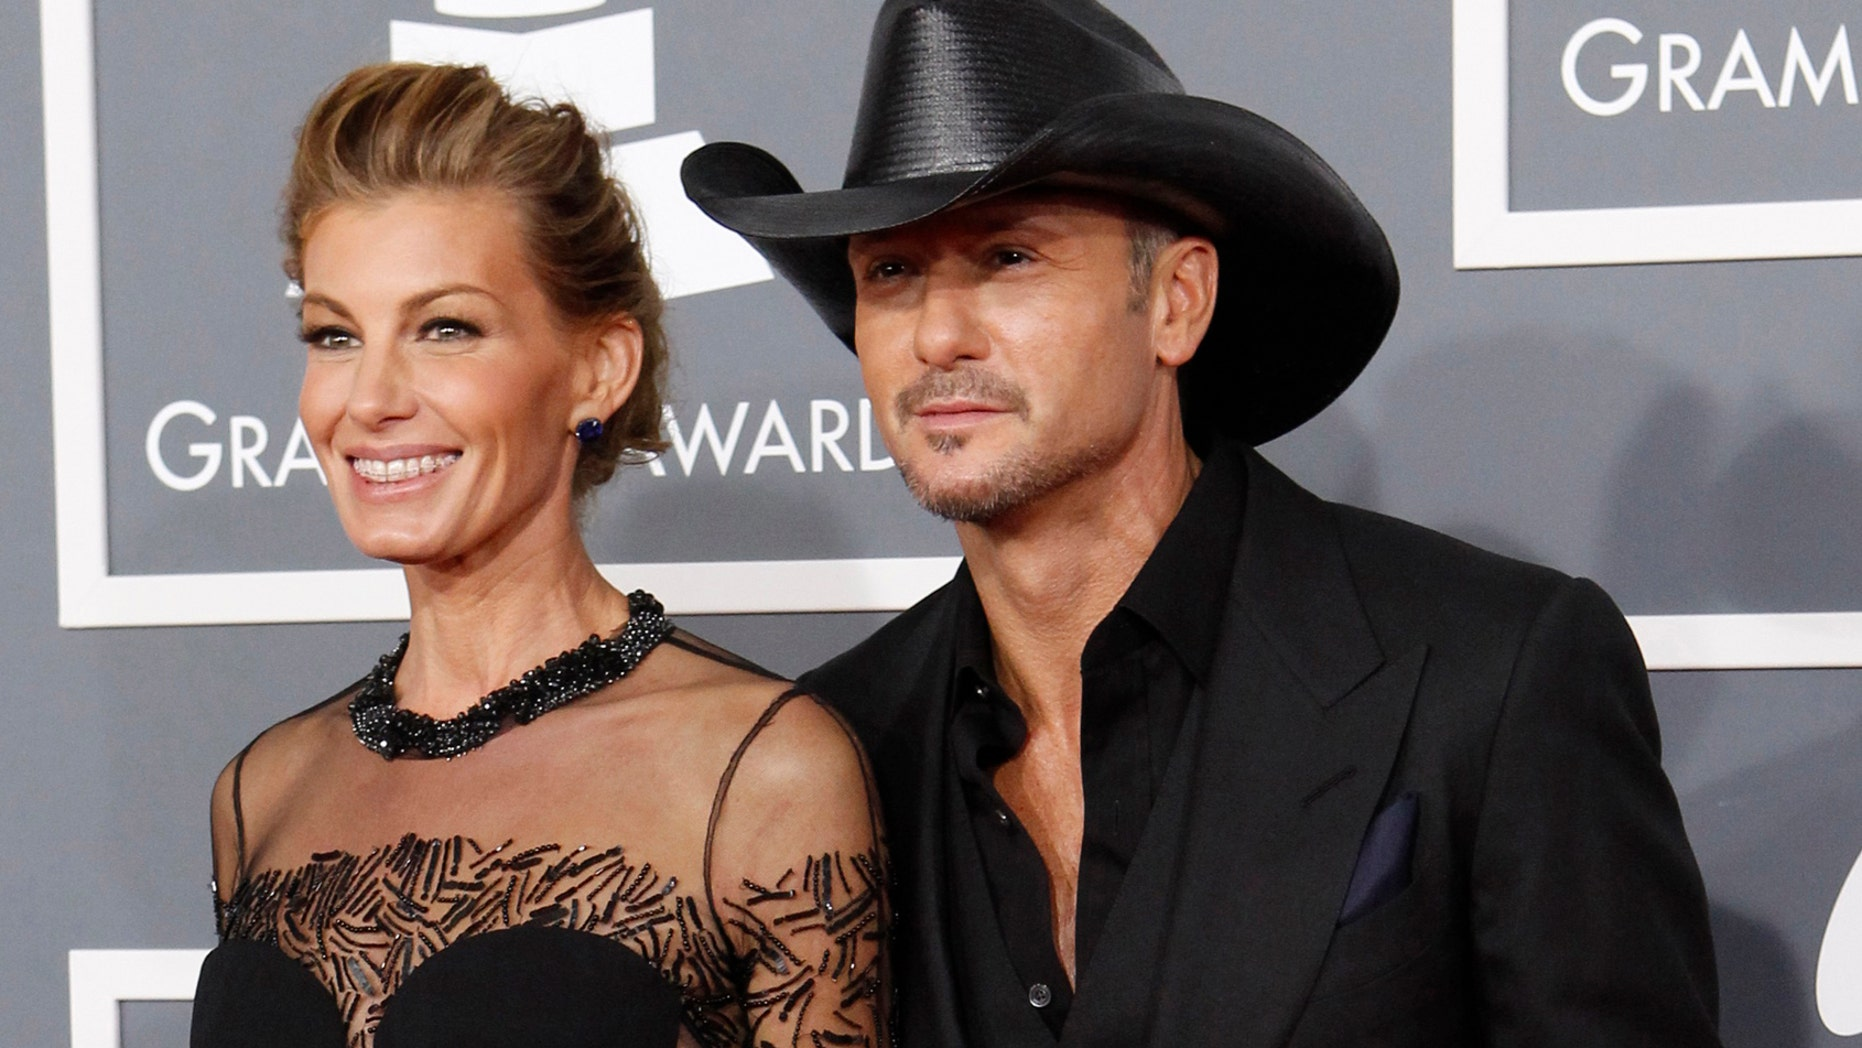 Country singers Faith HIll and her husband Tim McGraw arrive at the 55th annual Grammy Awards in Los Angeles, California February 10, 2013. REUTERS/Mario Anzuoni (UNITED STATES - Tags: ENTERTAINMENT) (GRAMMYS-ARRIVALS) - RTR3DM59